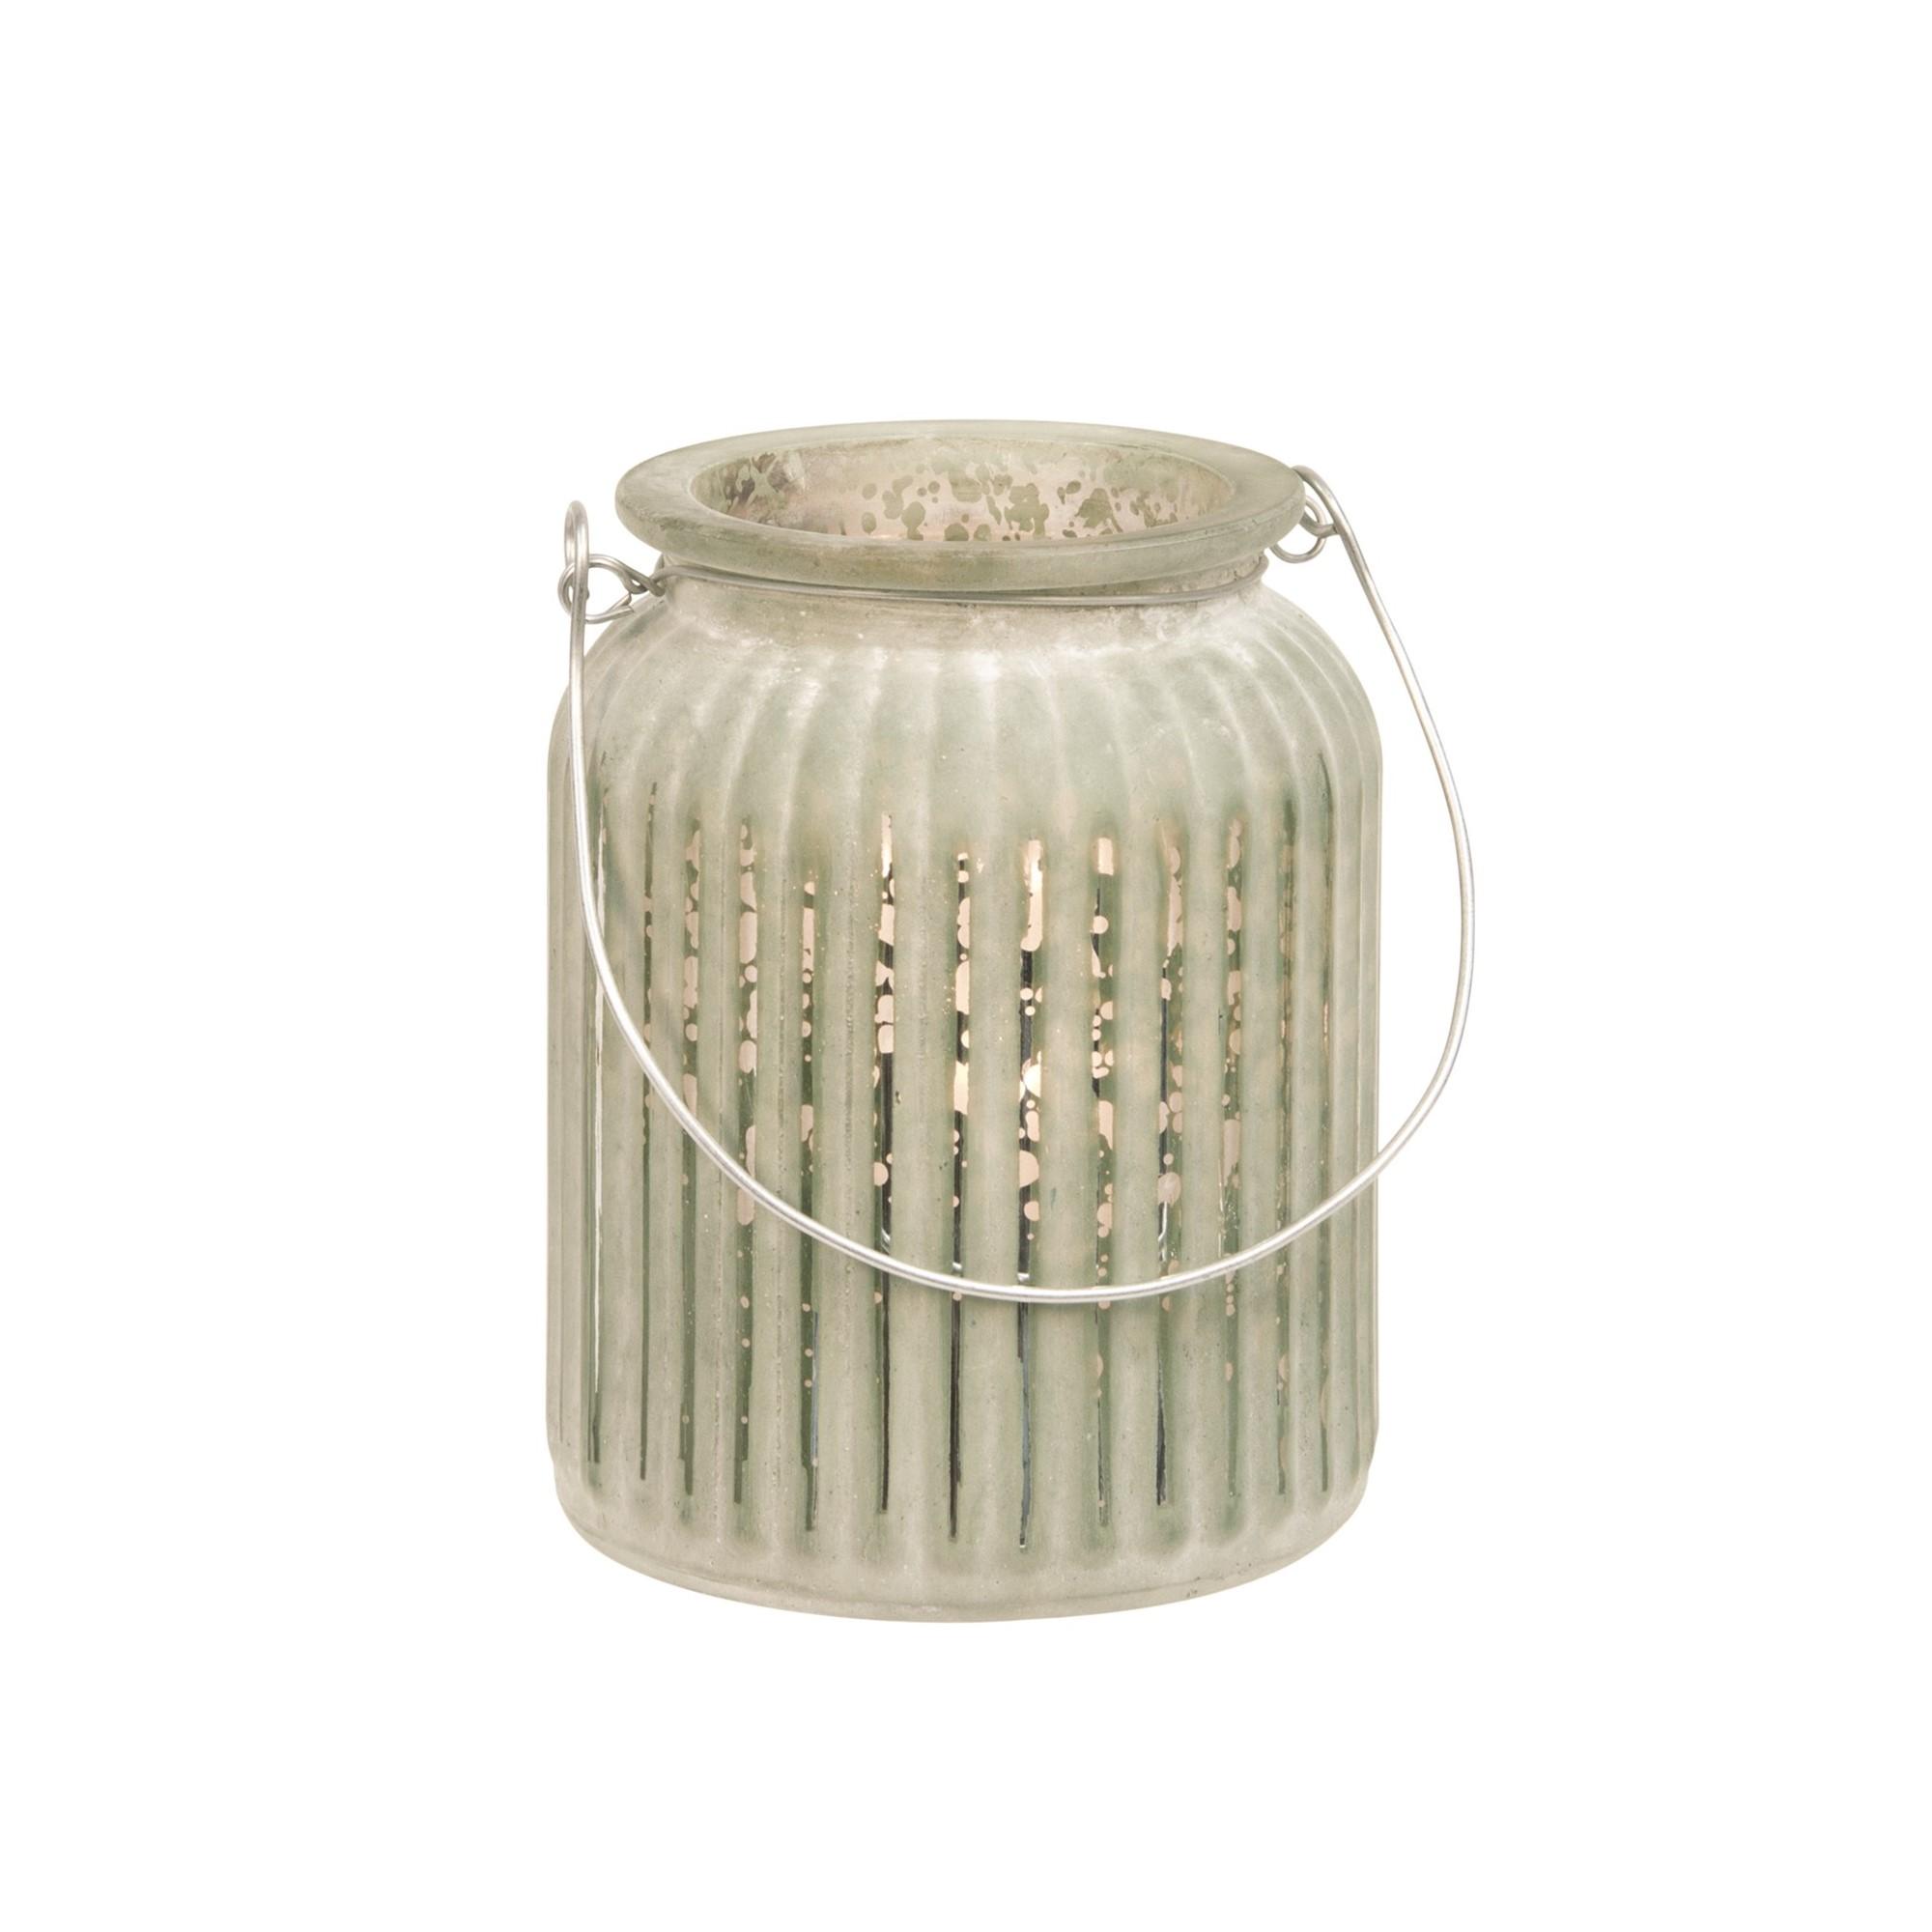 Lantern in Mint, Amanda's House Of Elegance  ($13.95)